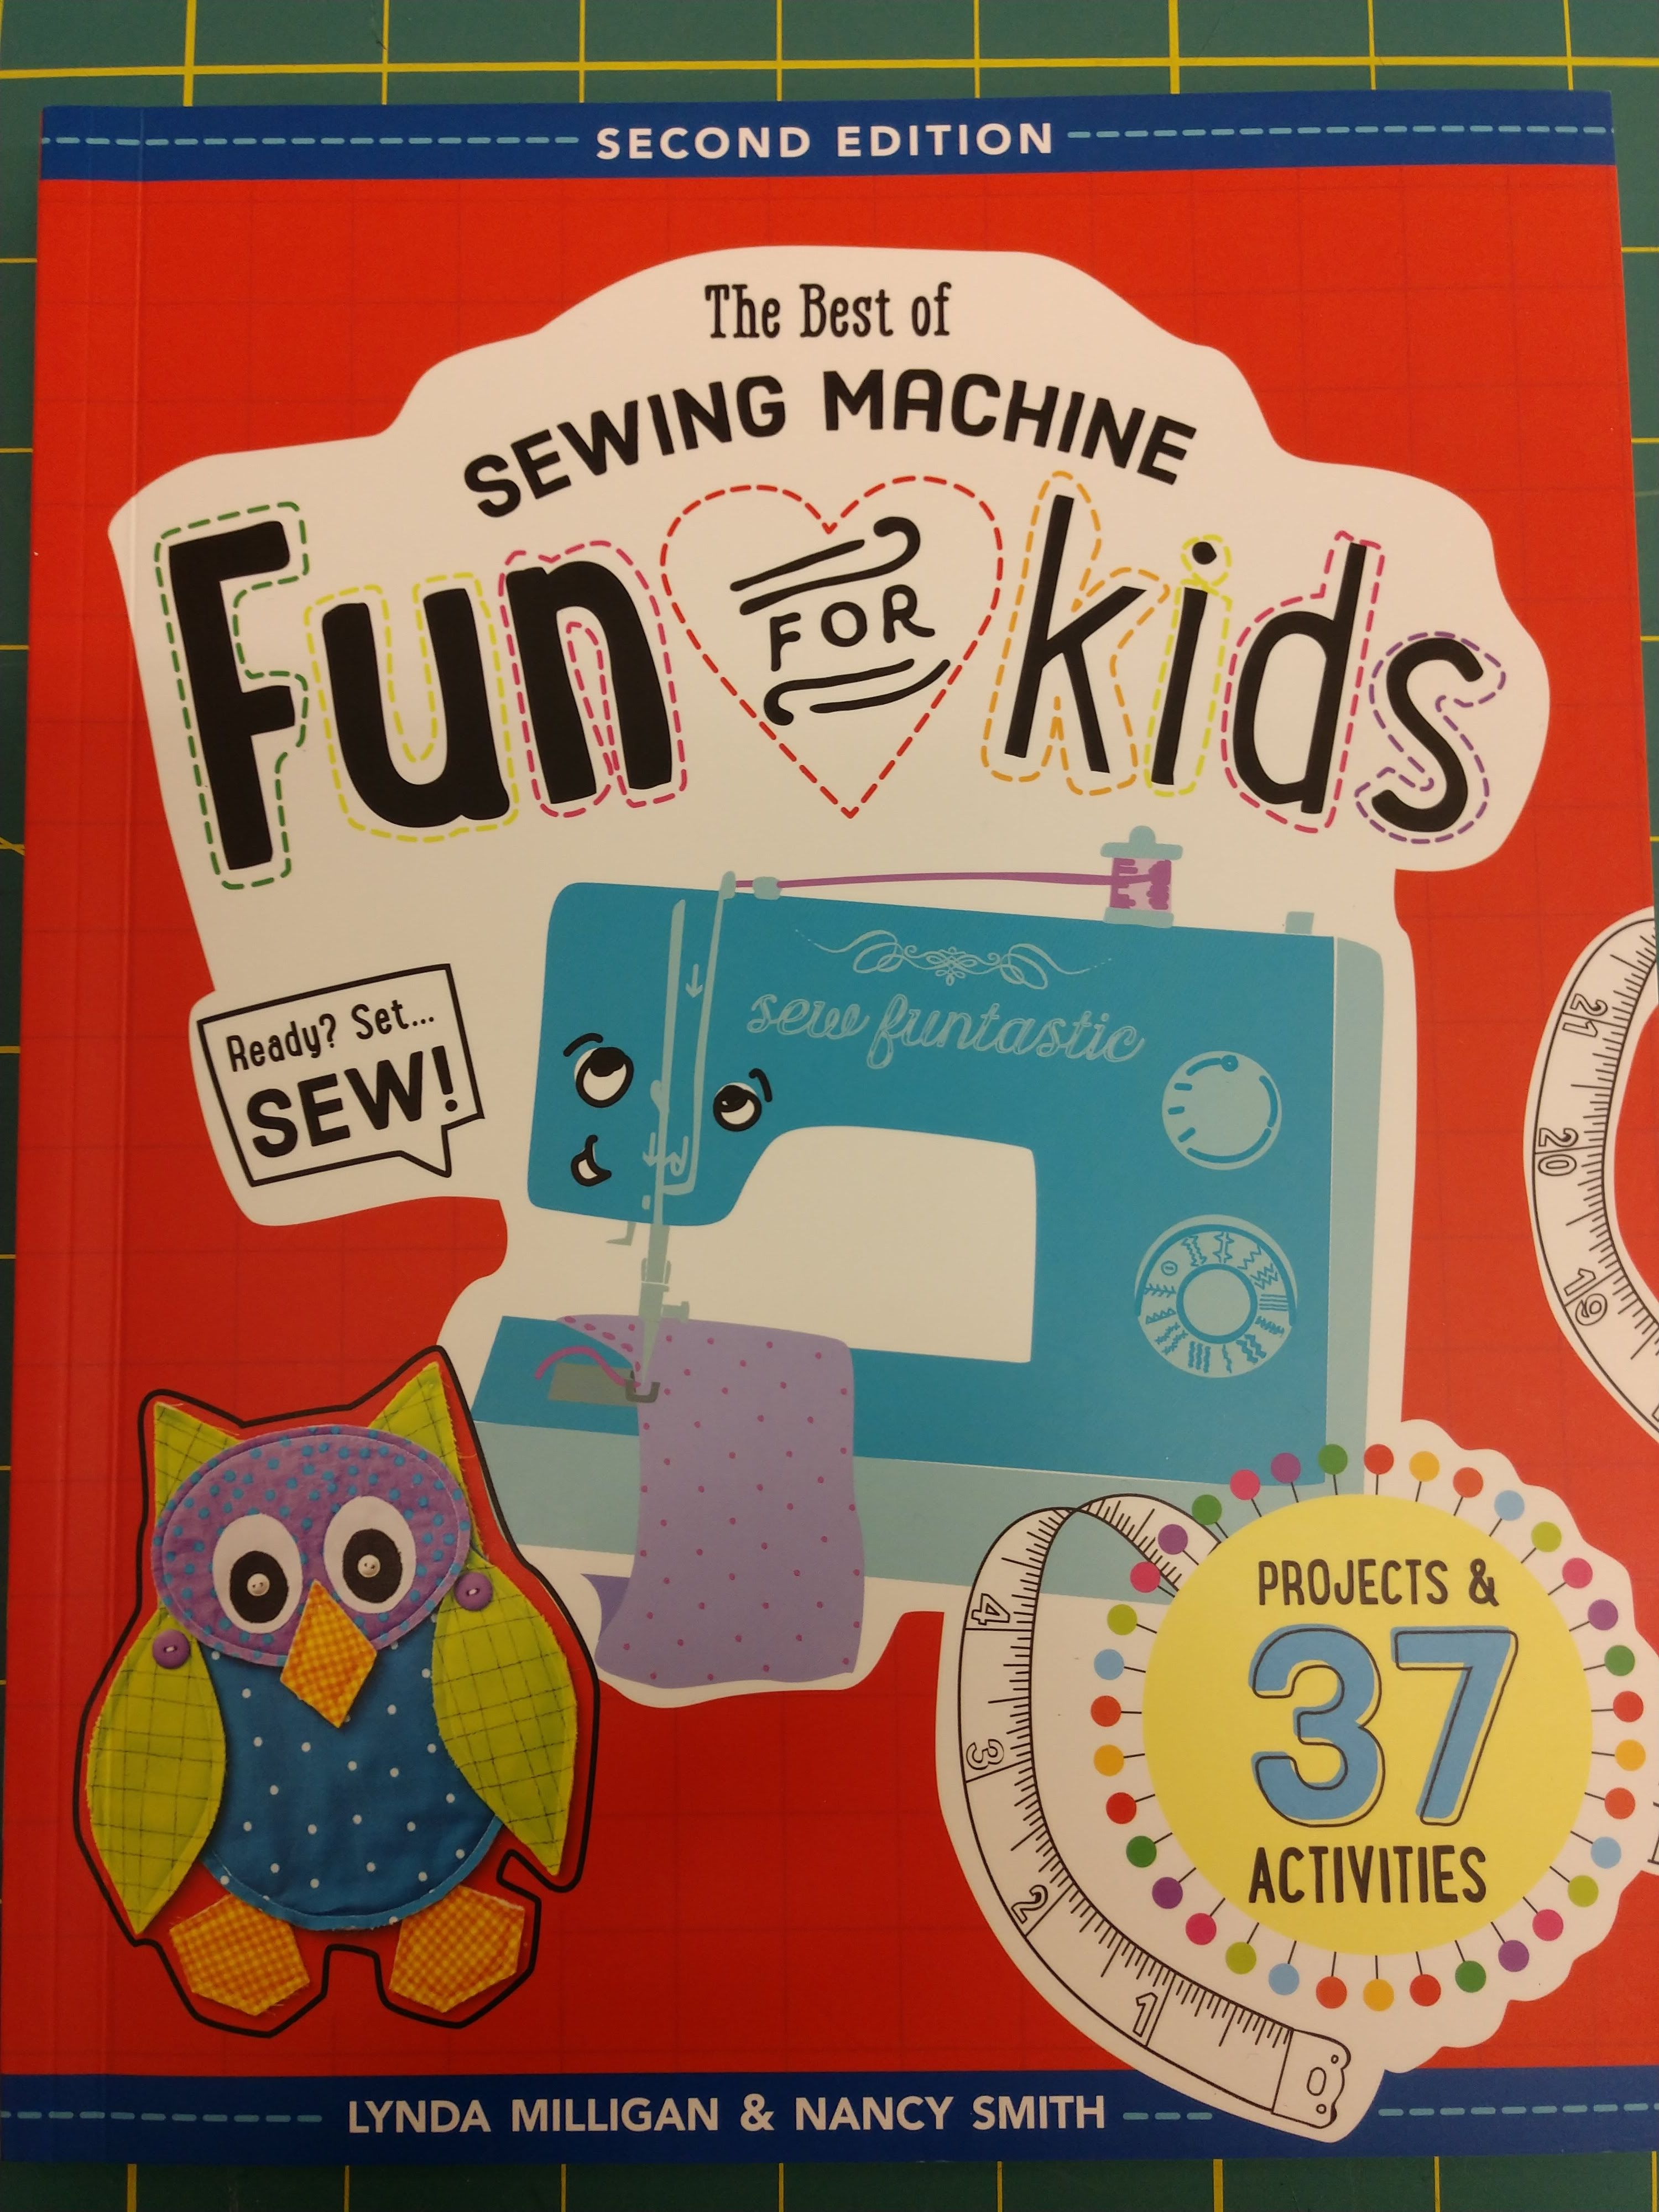 Check out the book we will be using to teach our new Youth Sewing